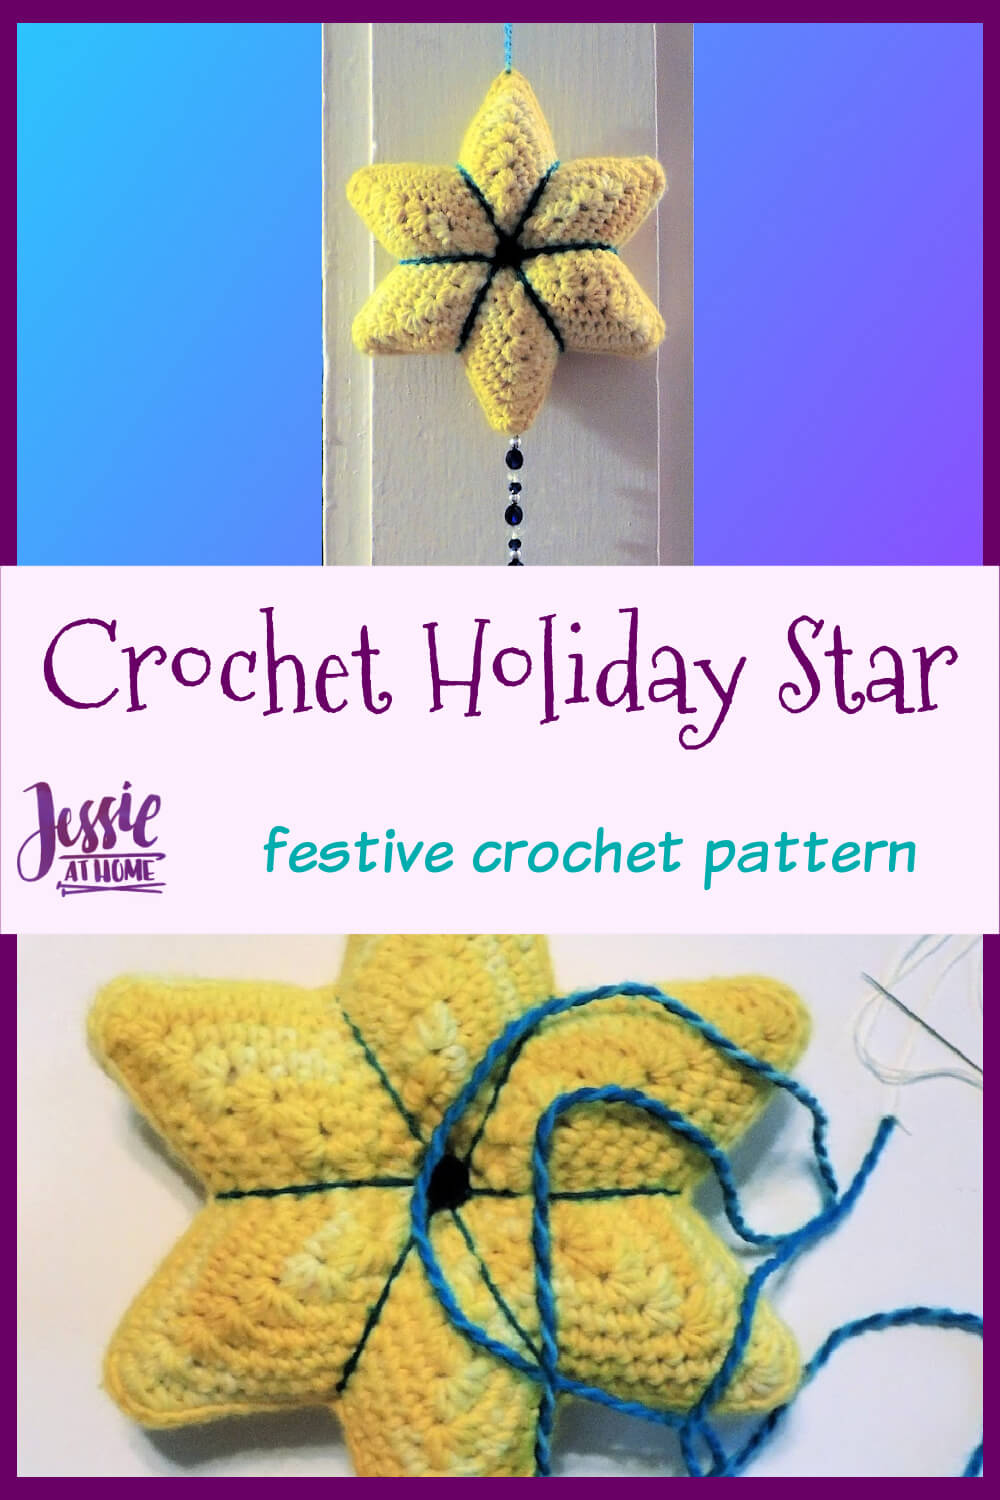 Crochet Holiday Star - Doorknob hanger or just festive décor!